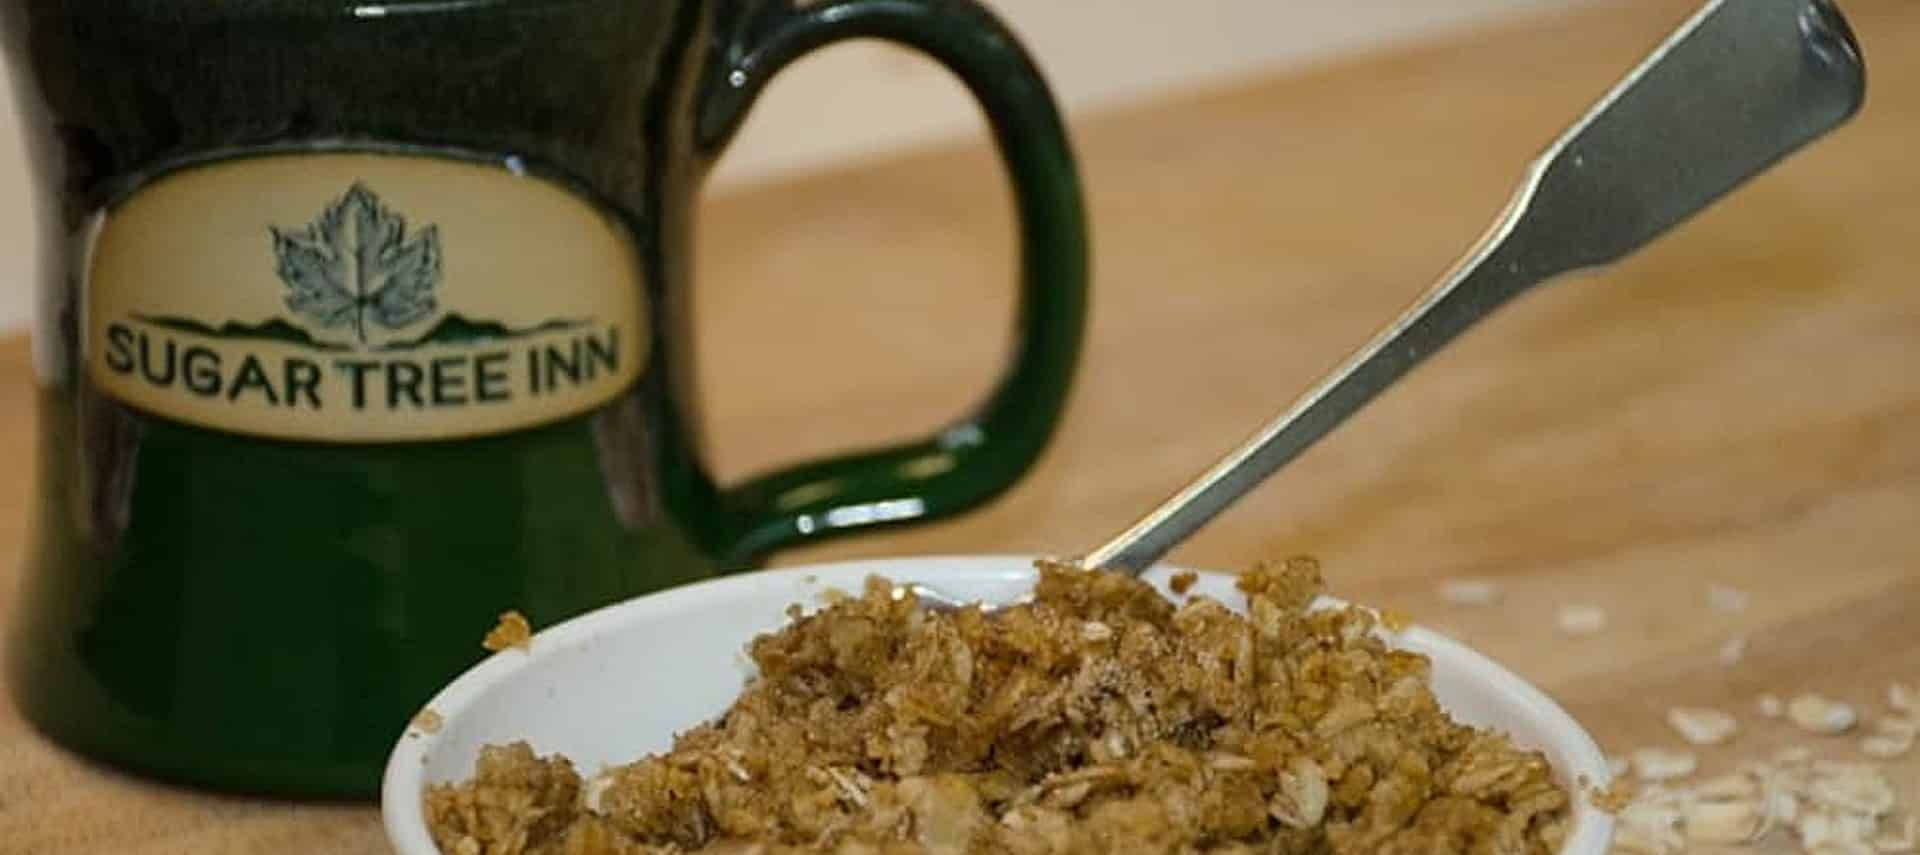 A delicious bowl of homemade oatmeal in a white bowl next to a dark green mug with text Sugar Tree Inn.